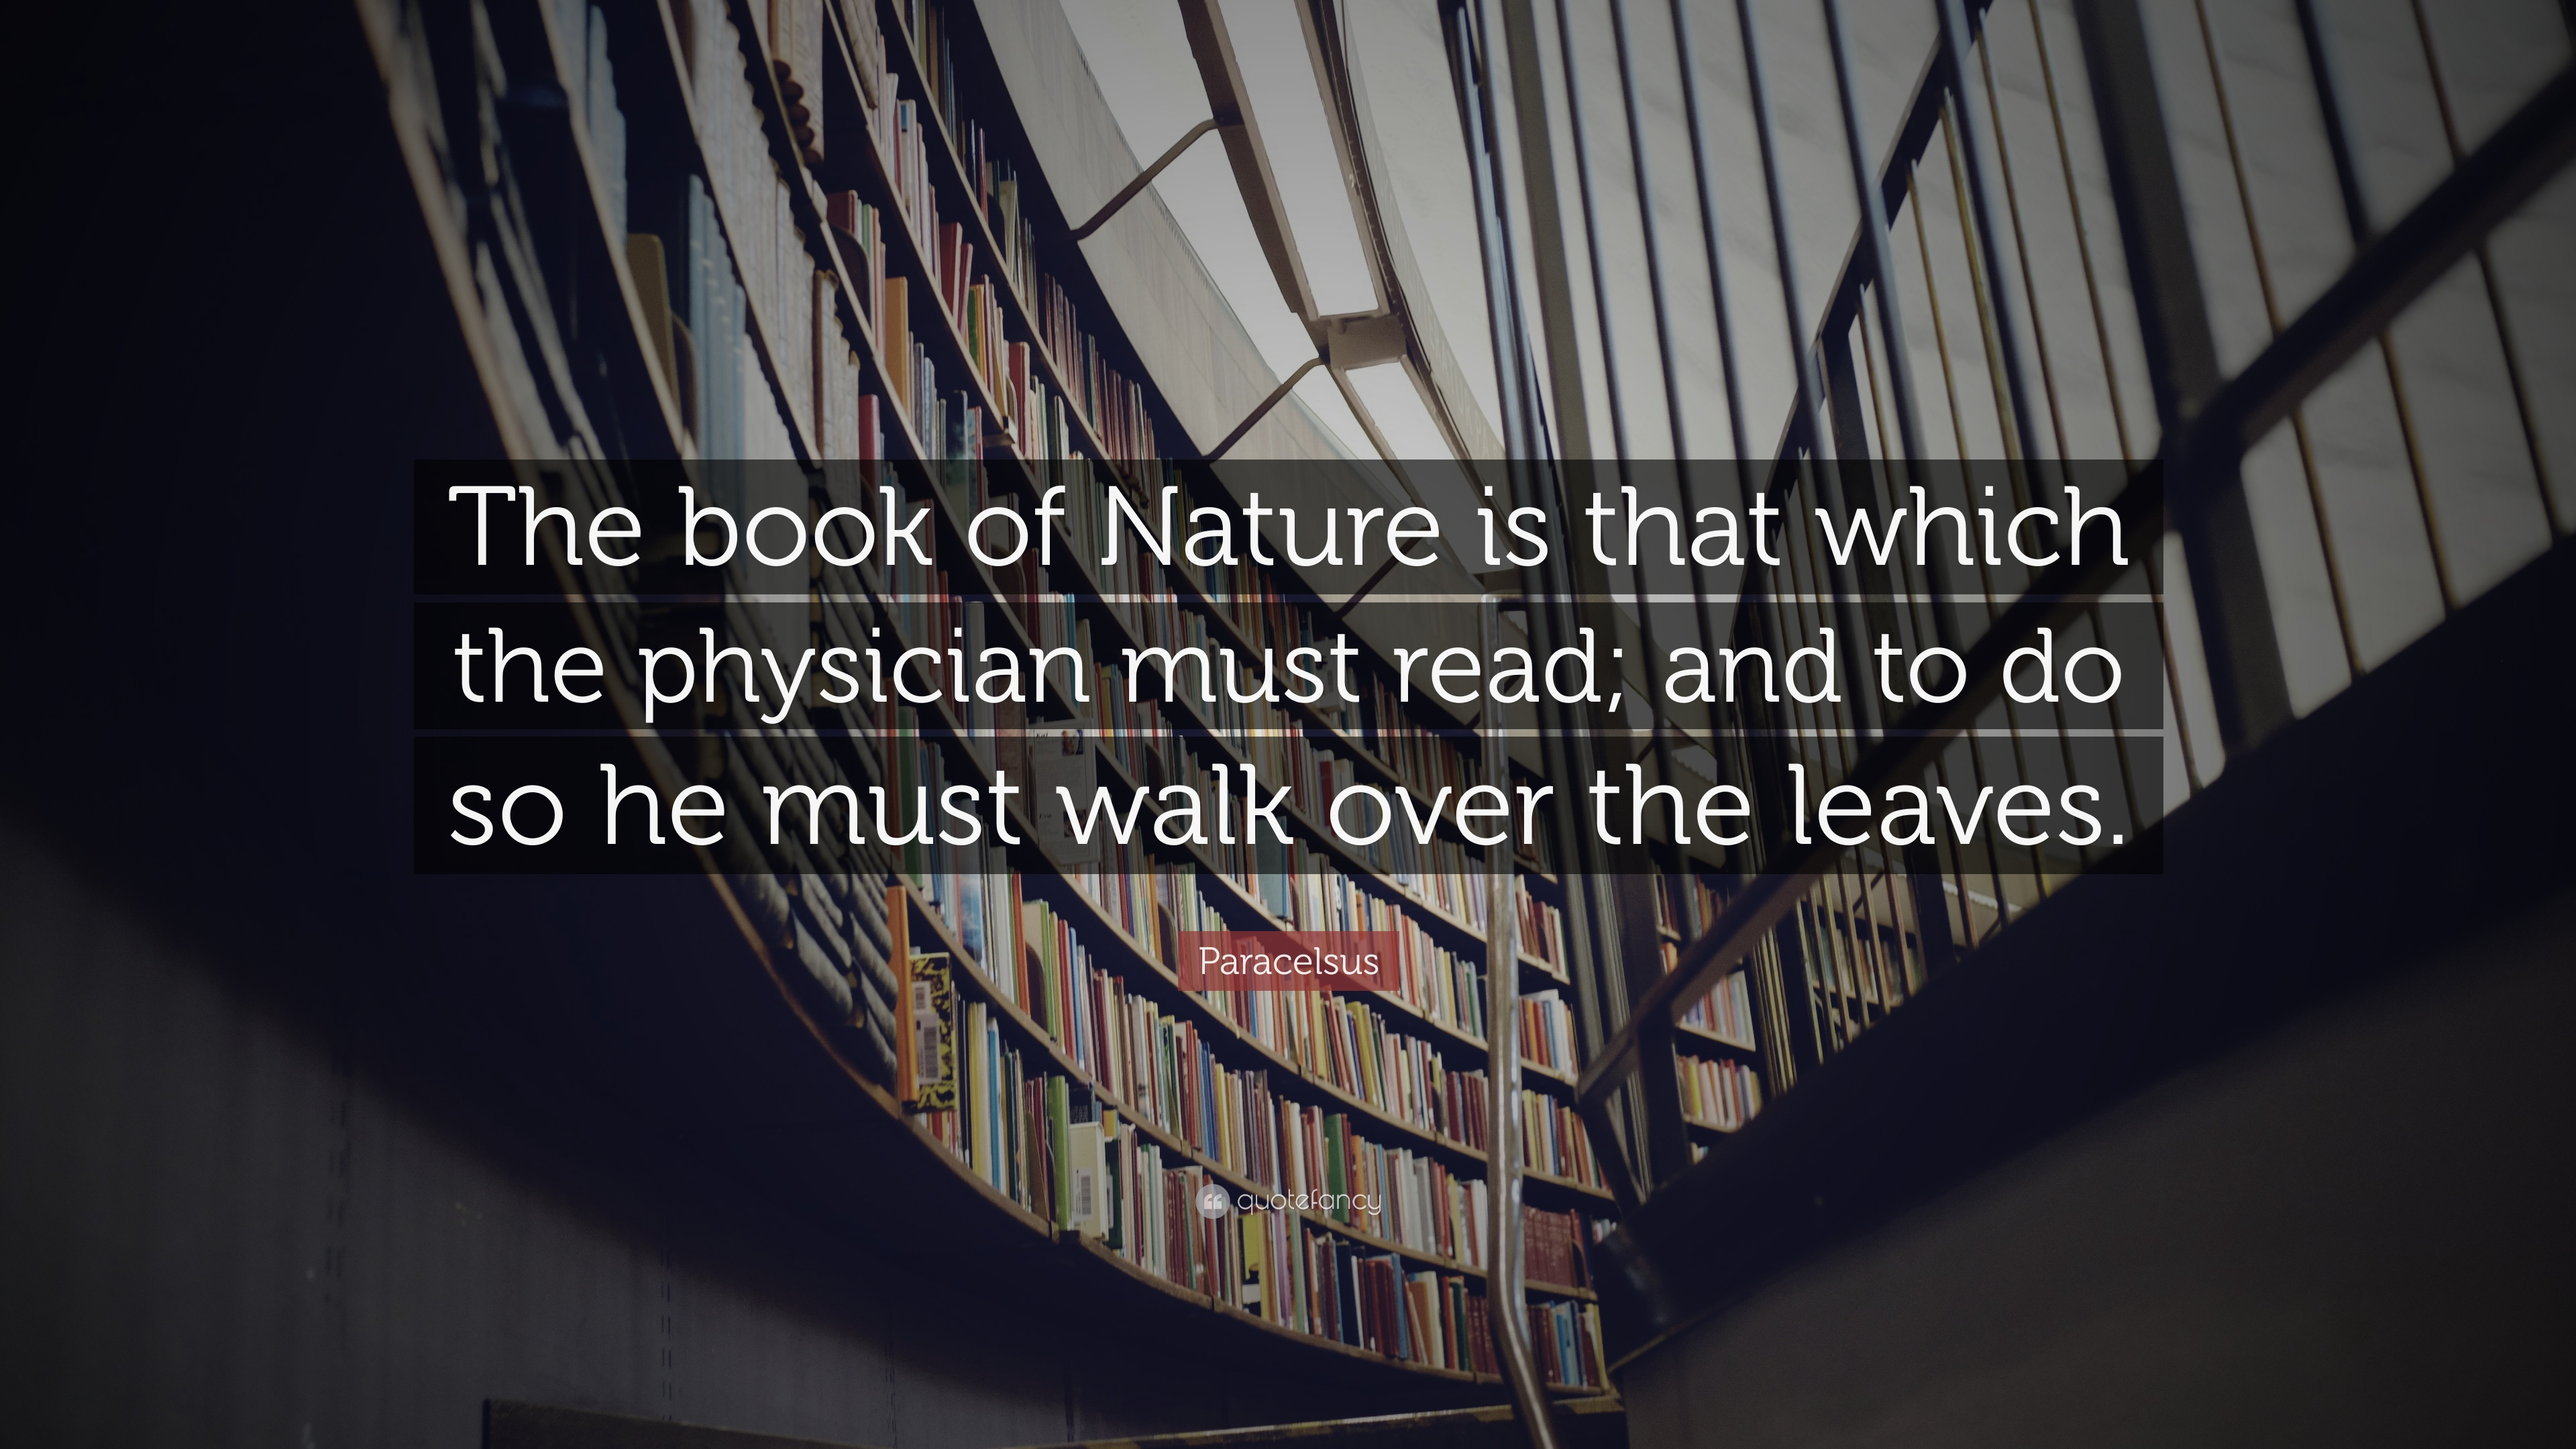 The Physician Book